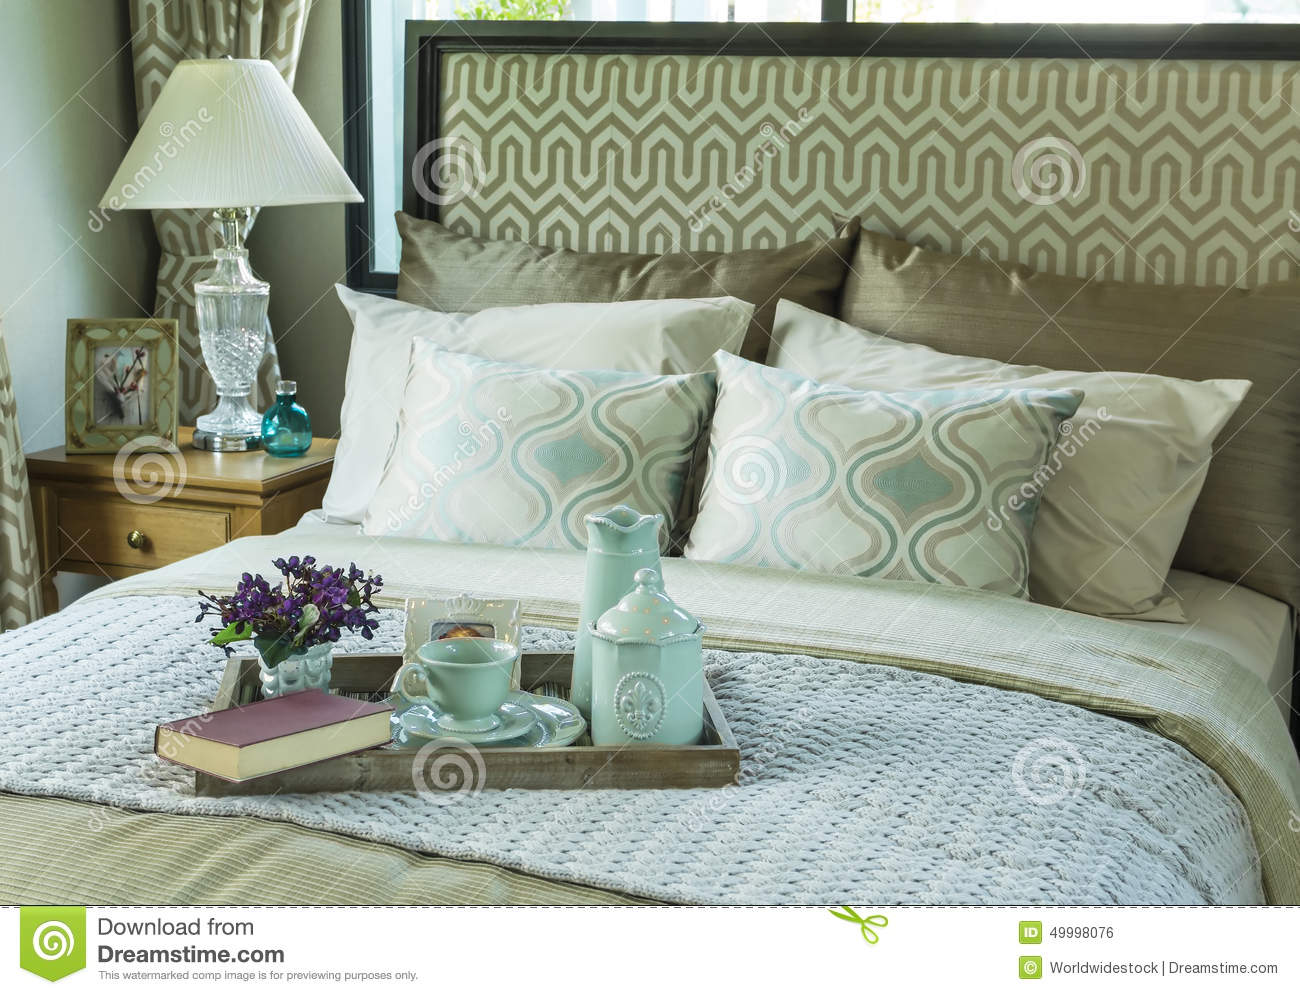 Decorative Tray With Tea Set On The Bed Royalty Free Stock